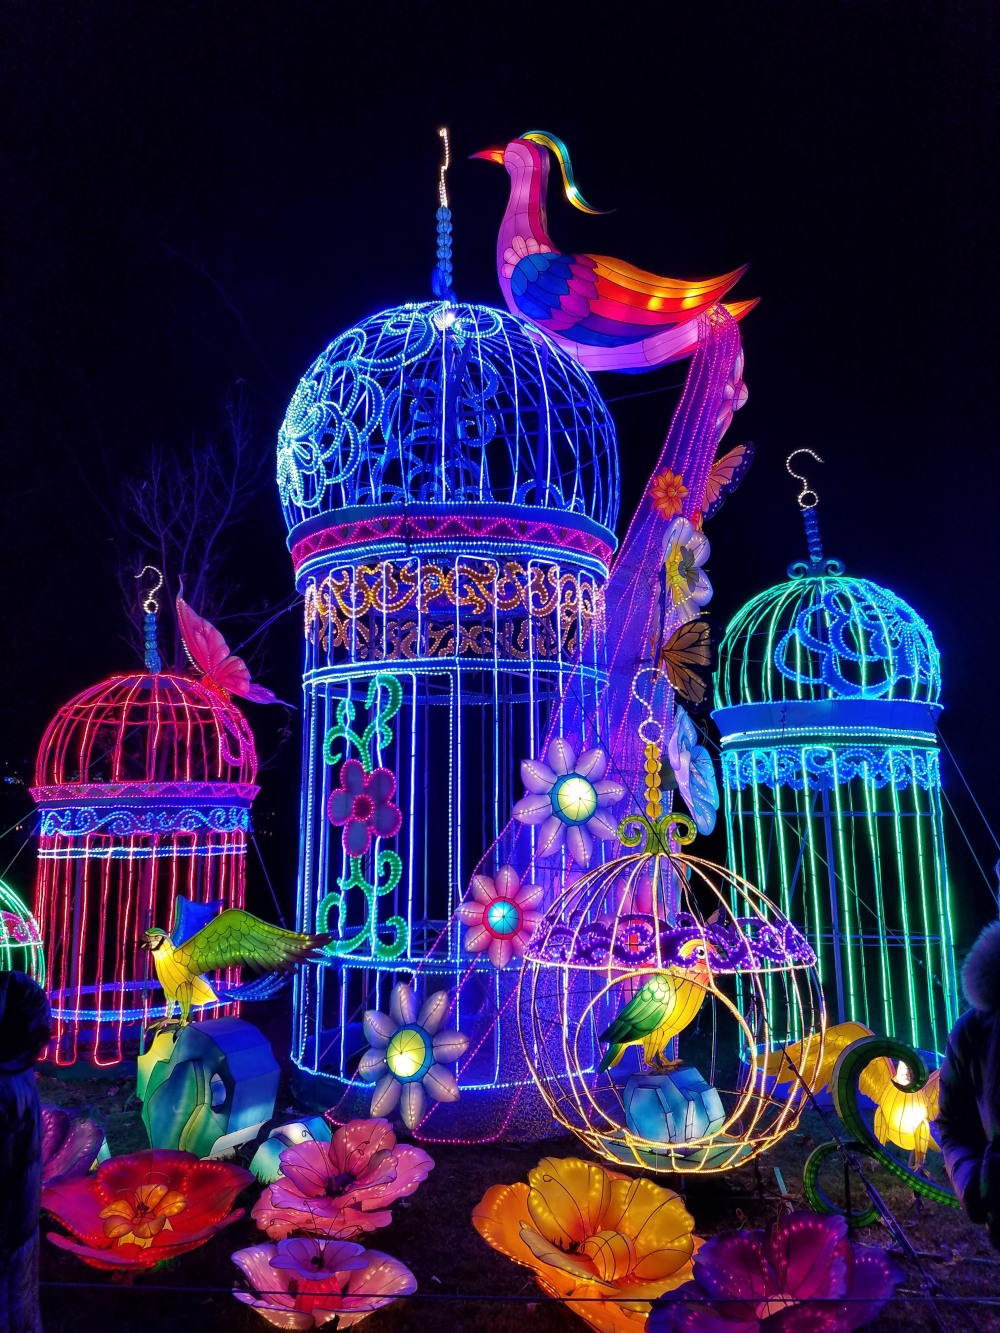 Lantern Festival Peacock Cages